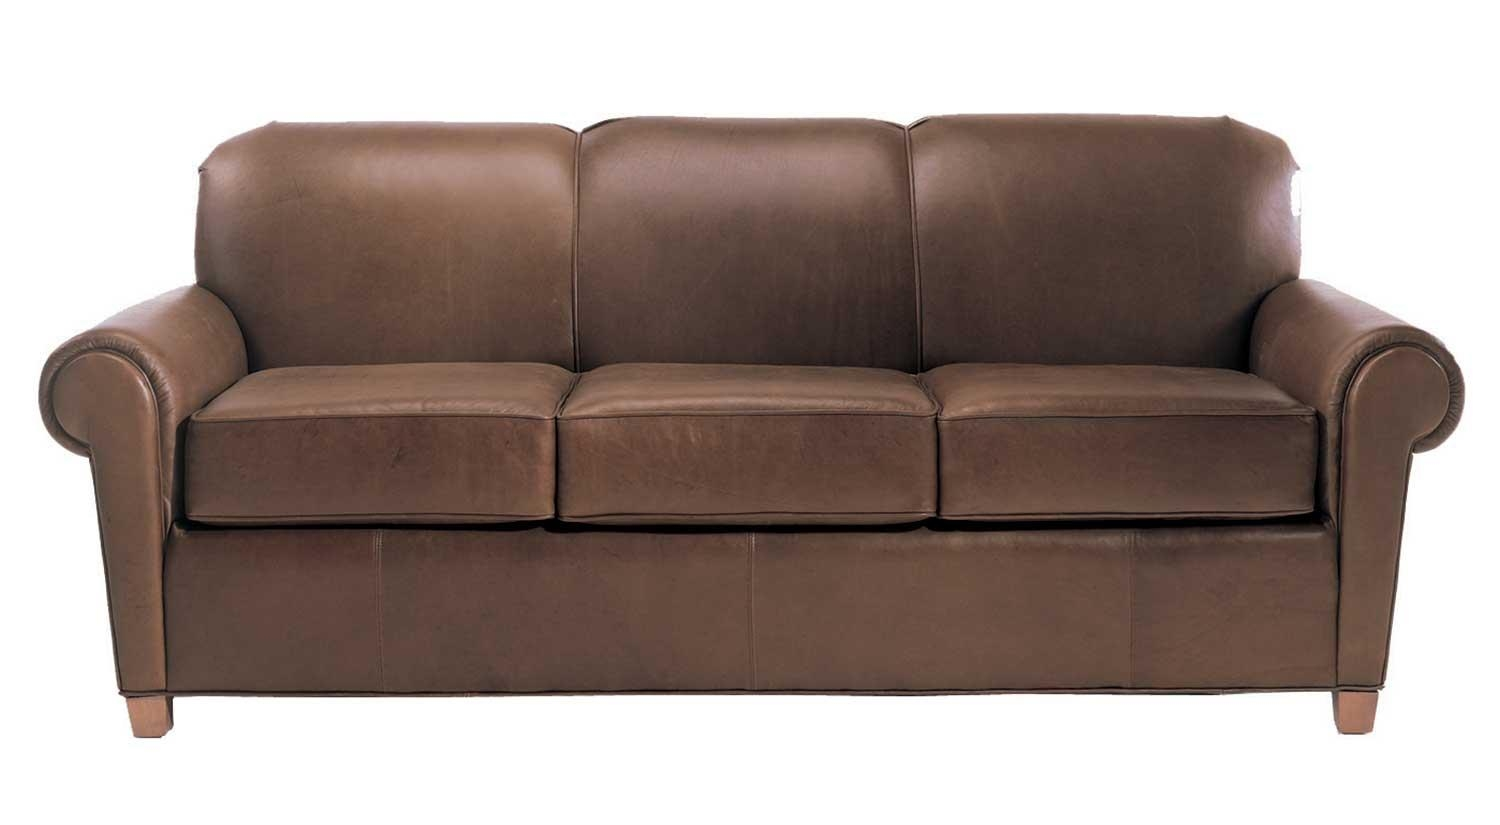 Circle Furniture – Portland Sofa | Sofas Boston | Circle Furniture With Circle Sofas (Image 6 of 20)